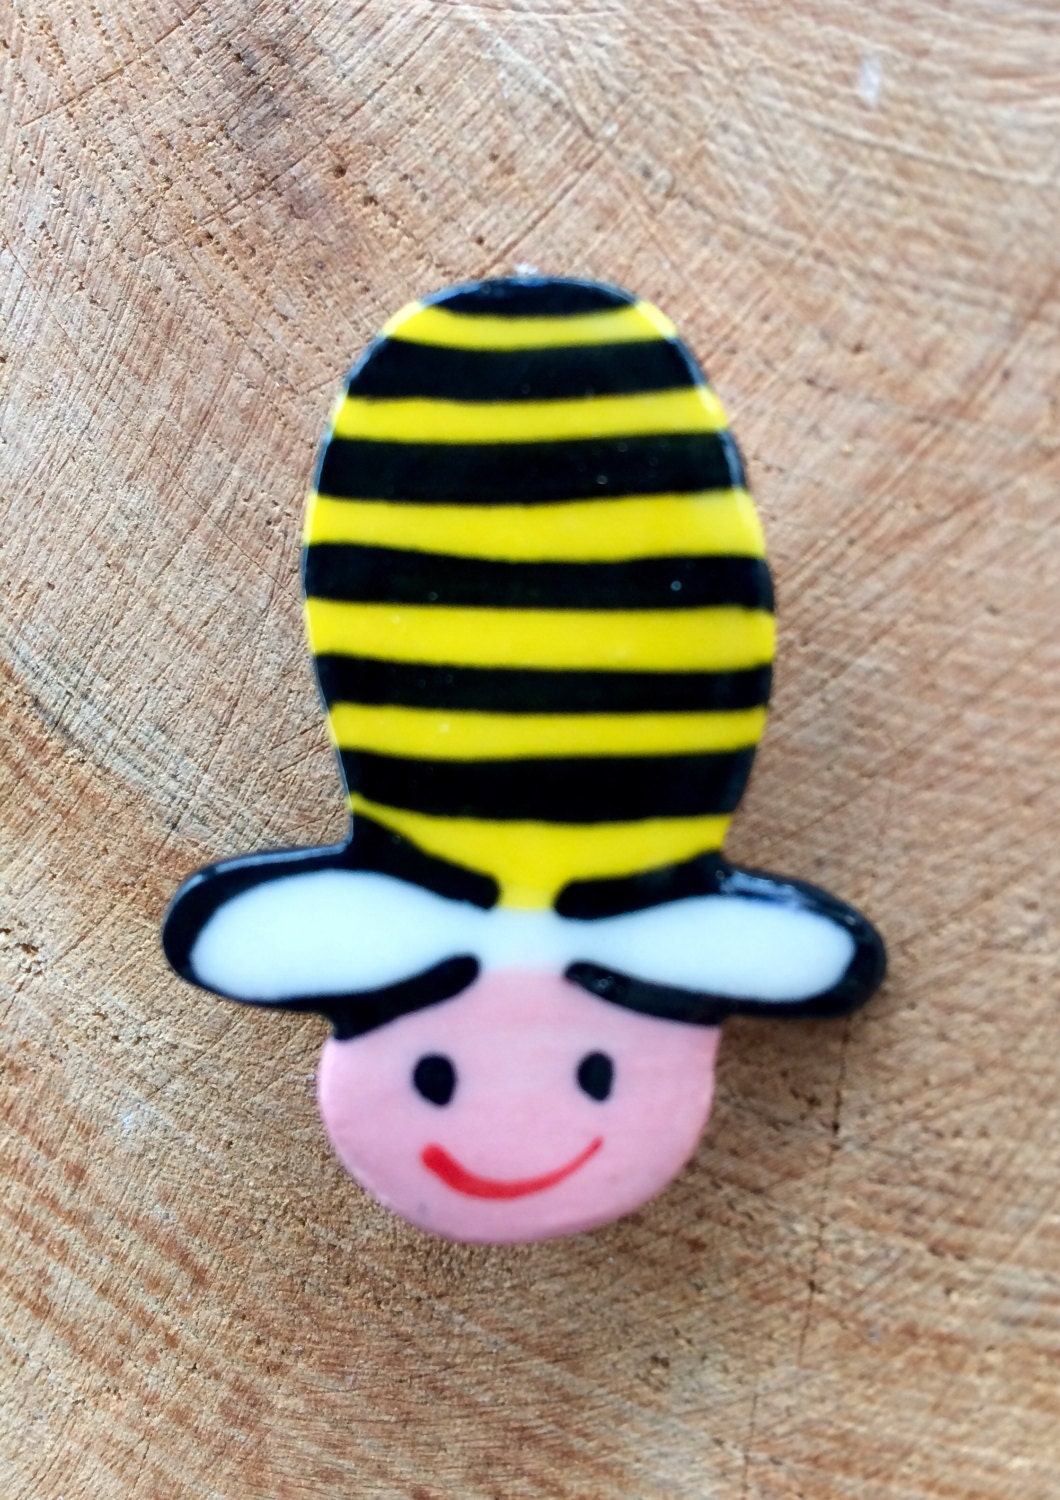 Cute Bumble Bee Brooch Pin Button BadgeCeramic Porcelain Kawaii